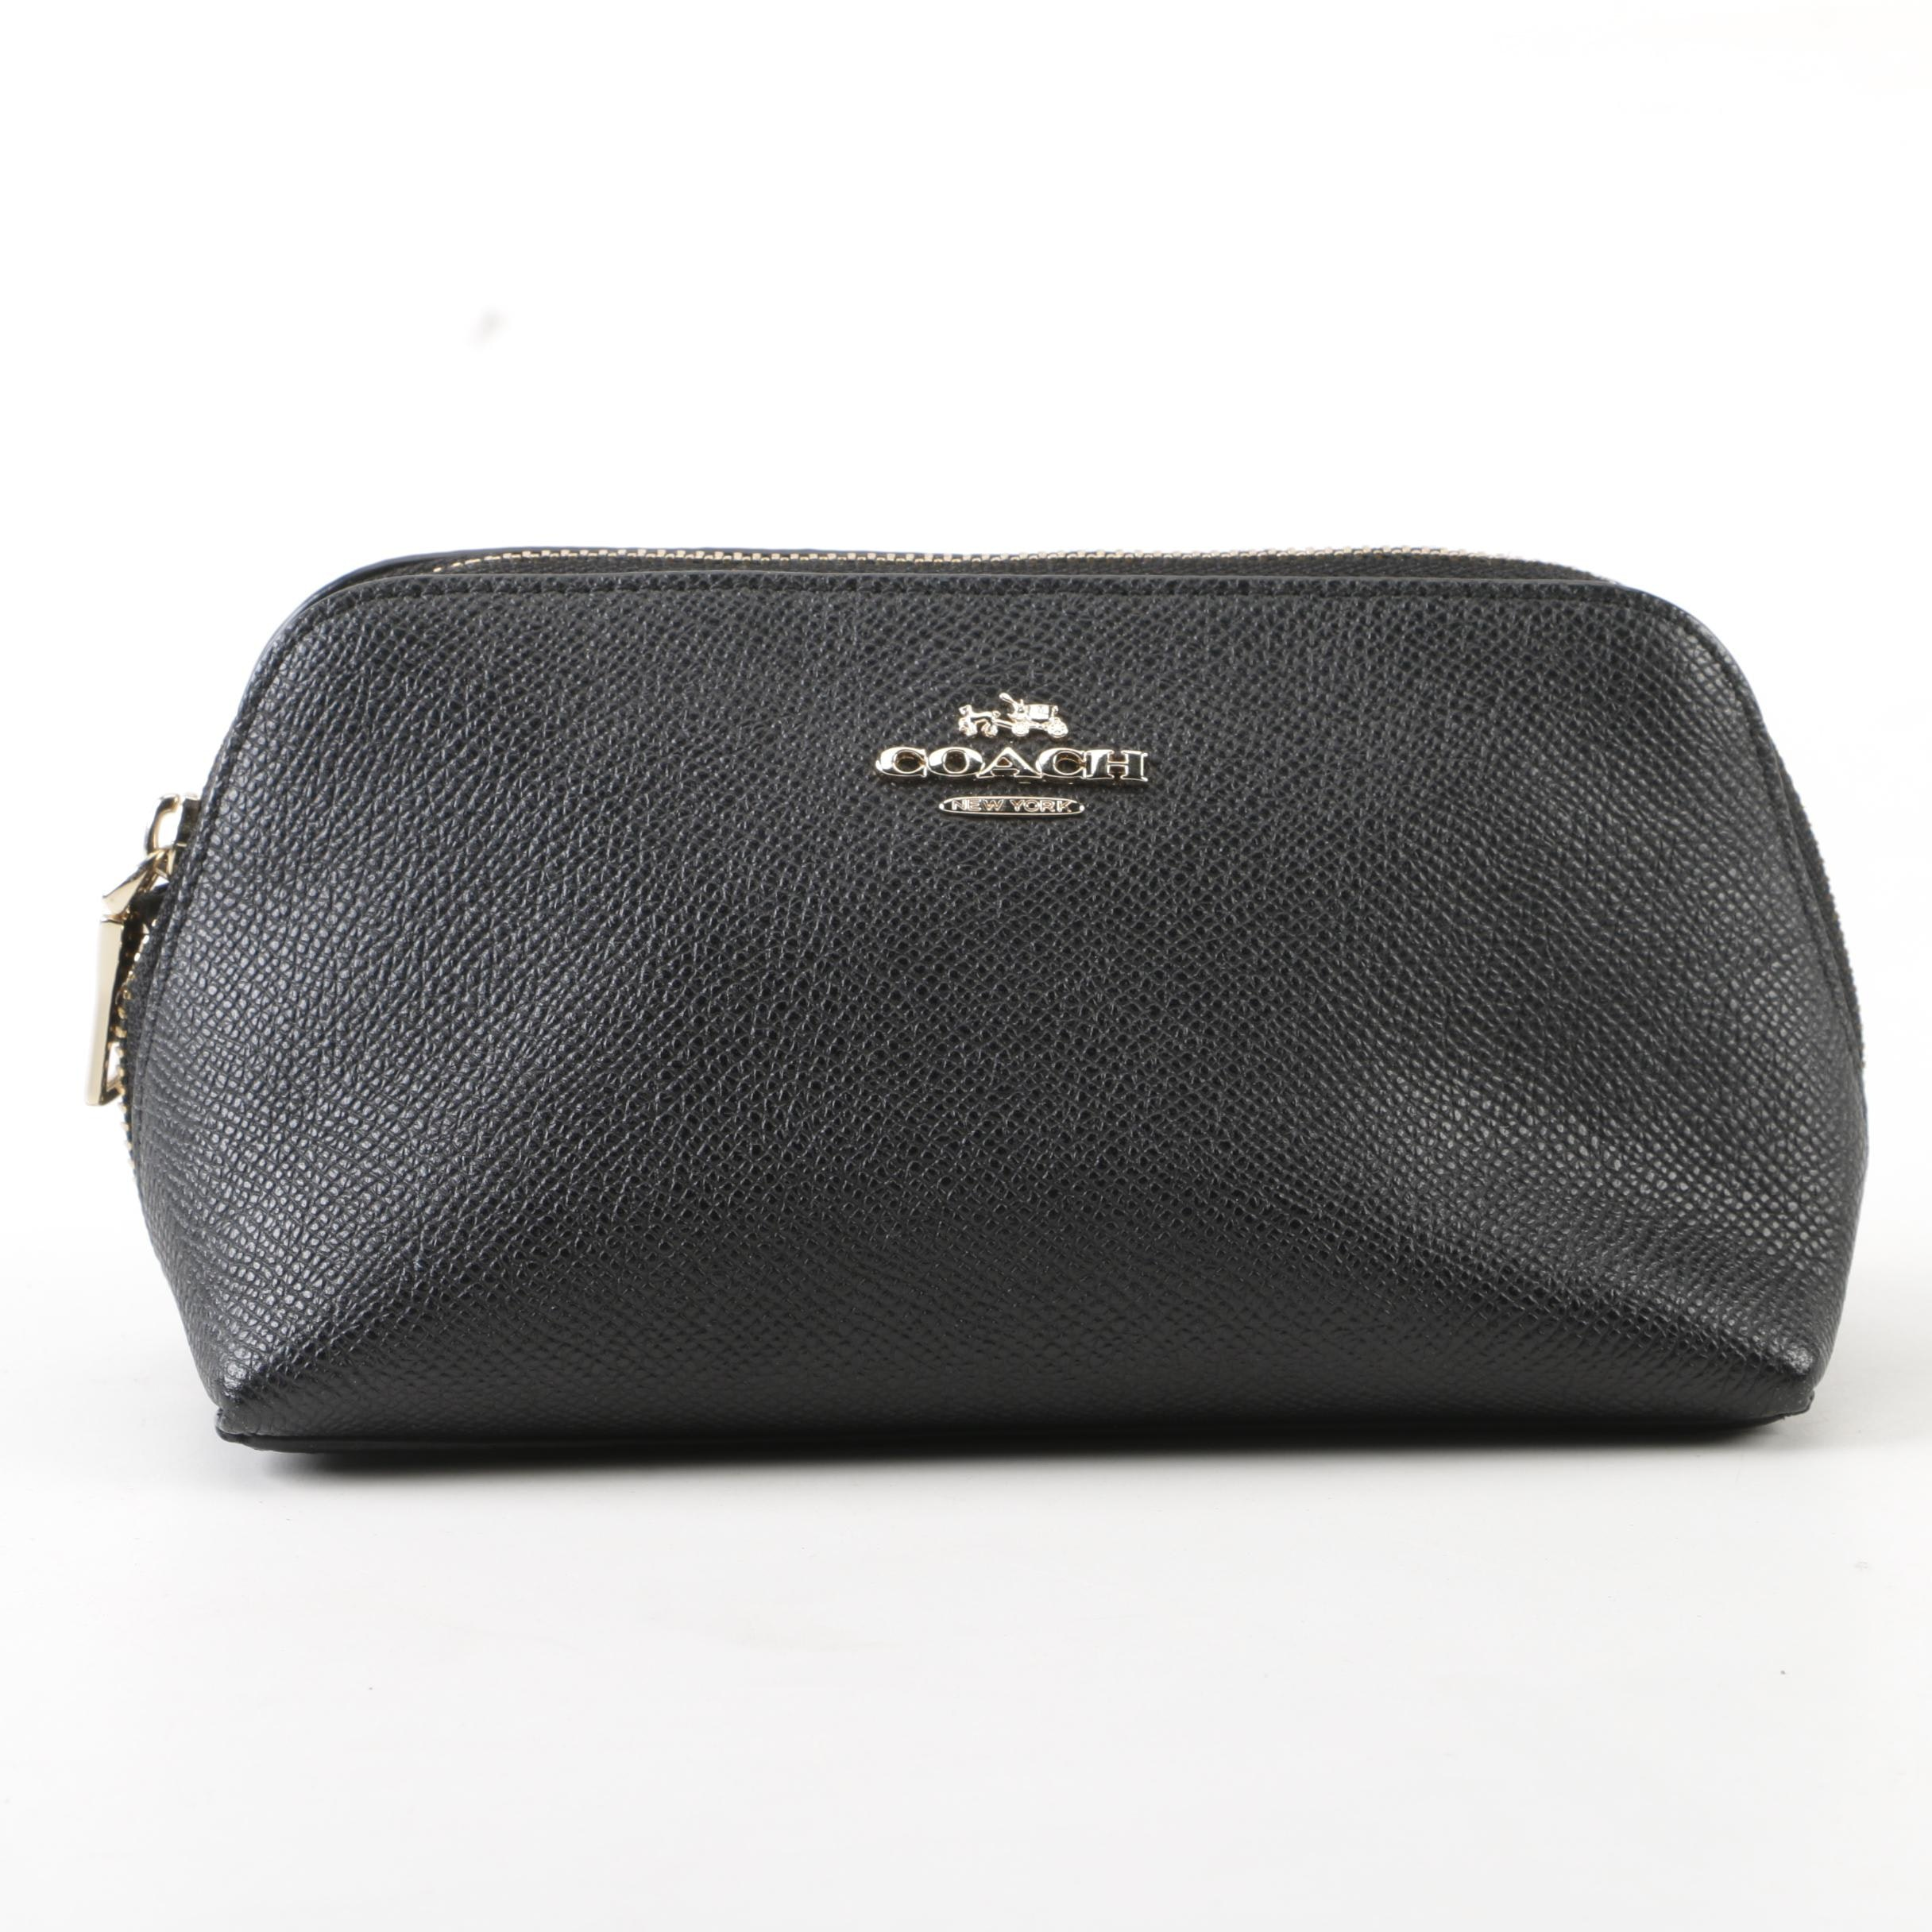 Coach New York Black Pebbled Leather Cosmetic Case